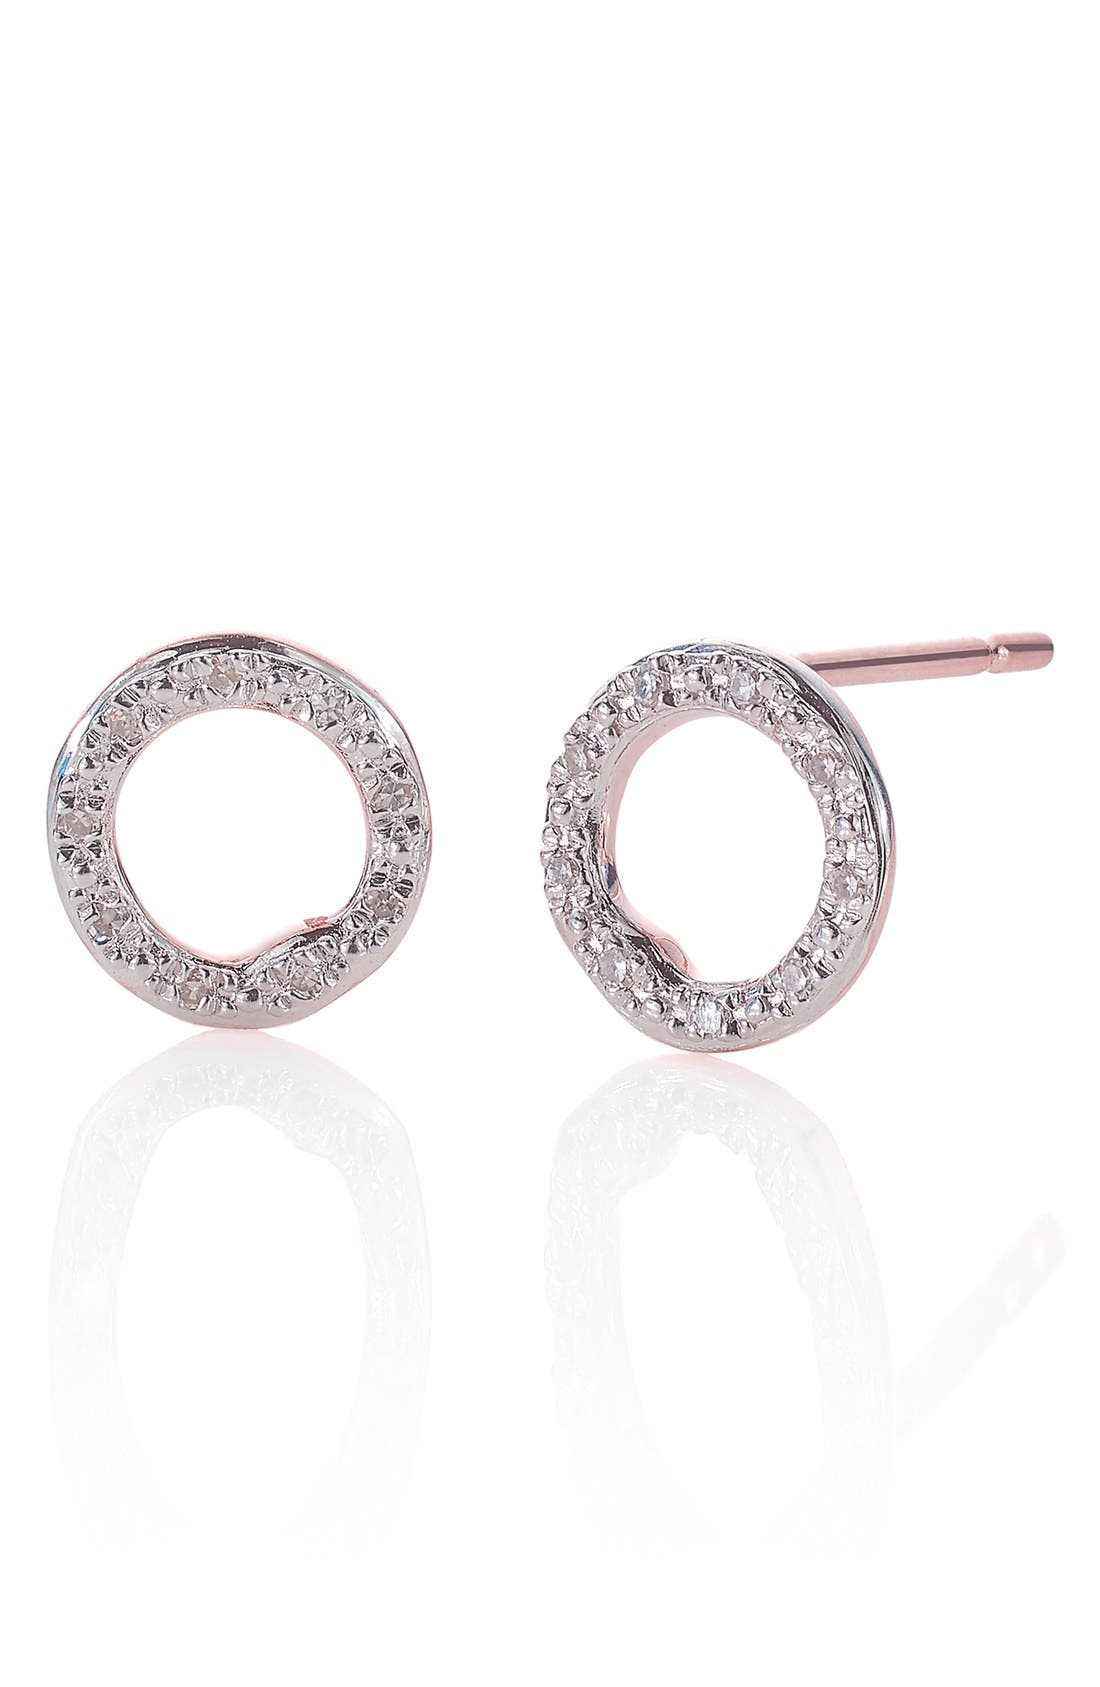 MONICA VINADER Riva Circle Stud Diamond Earrings